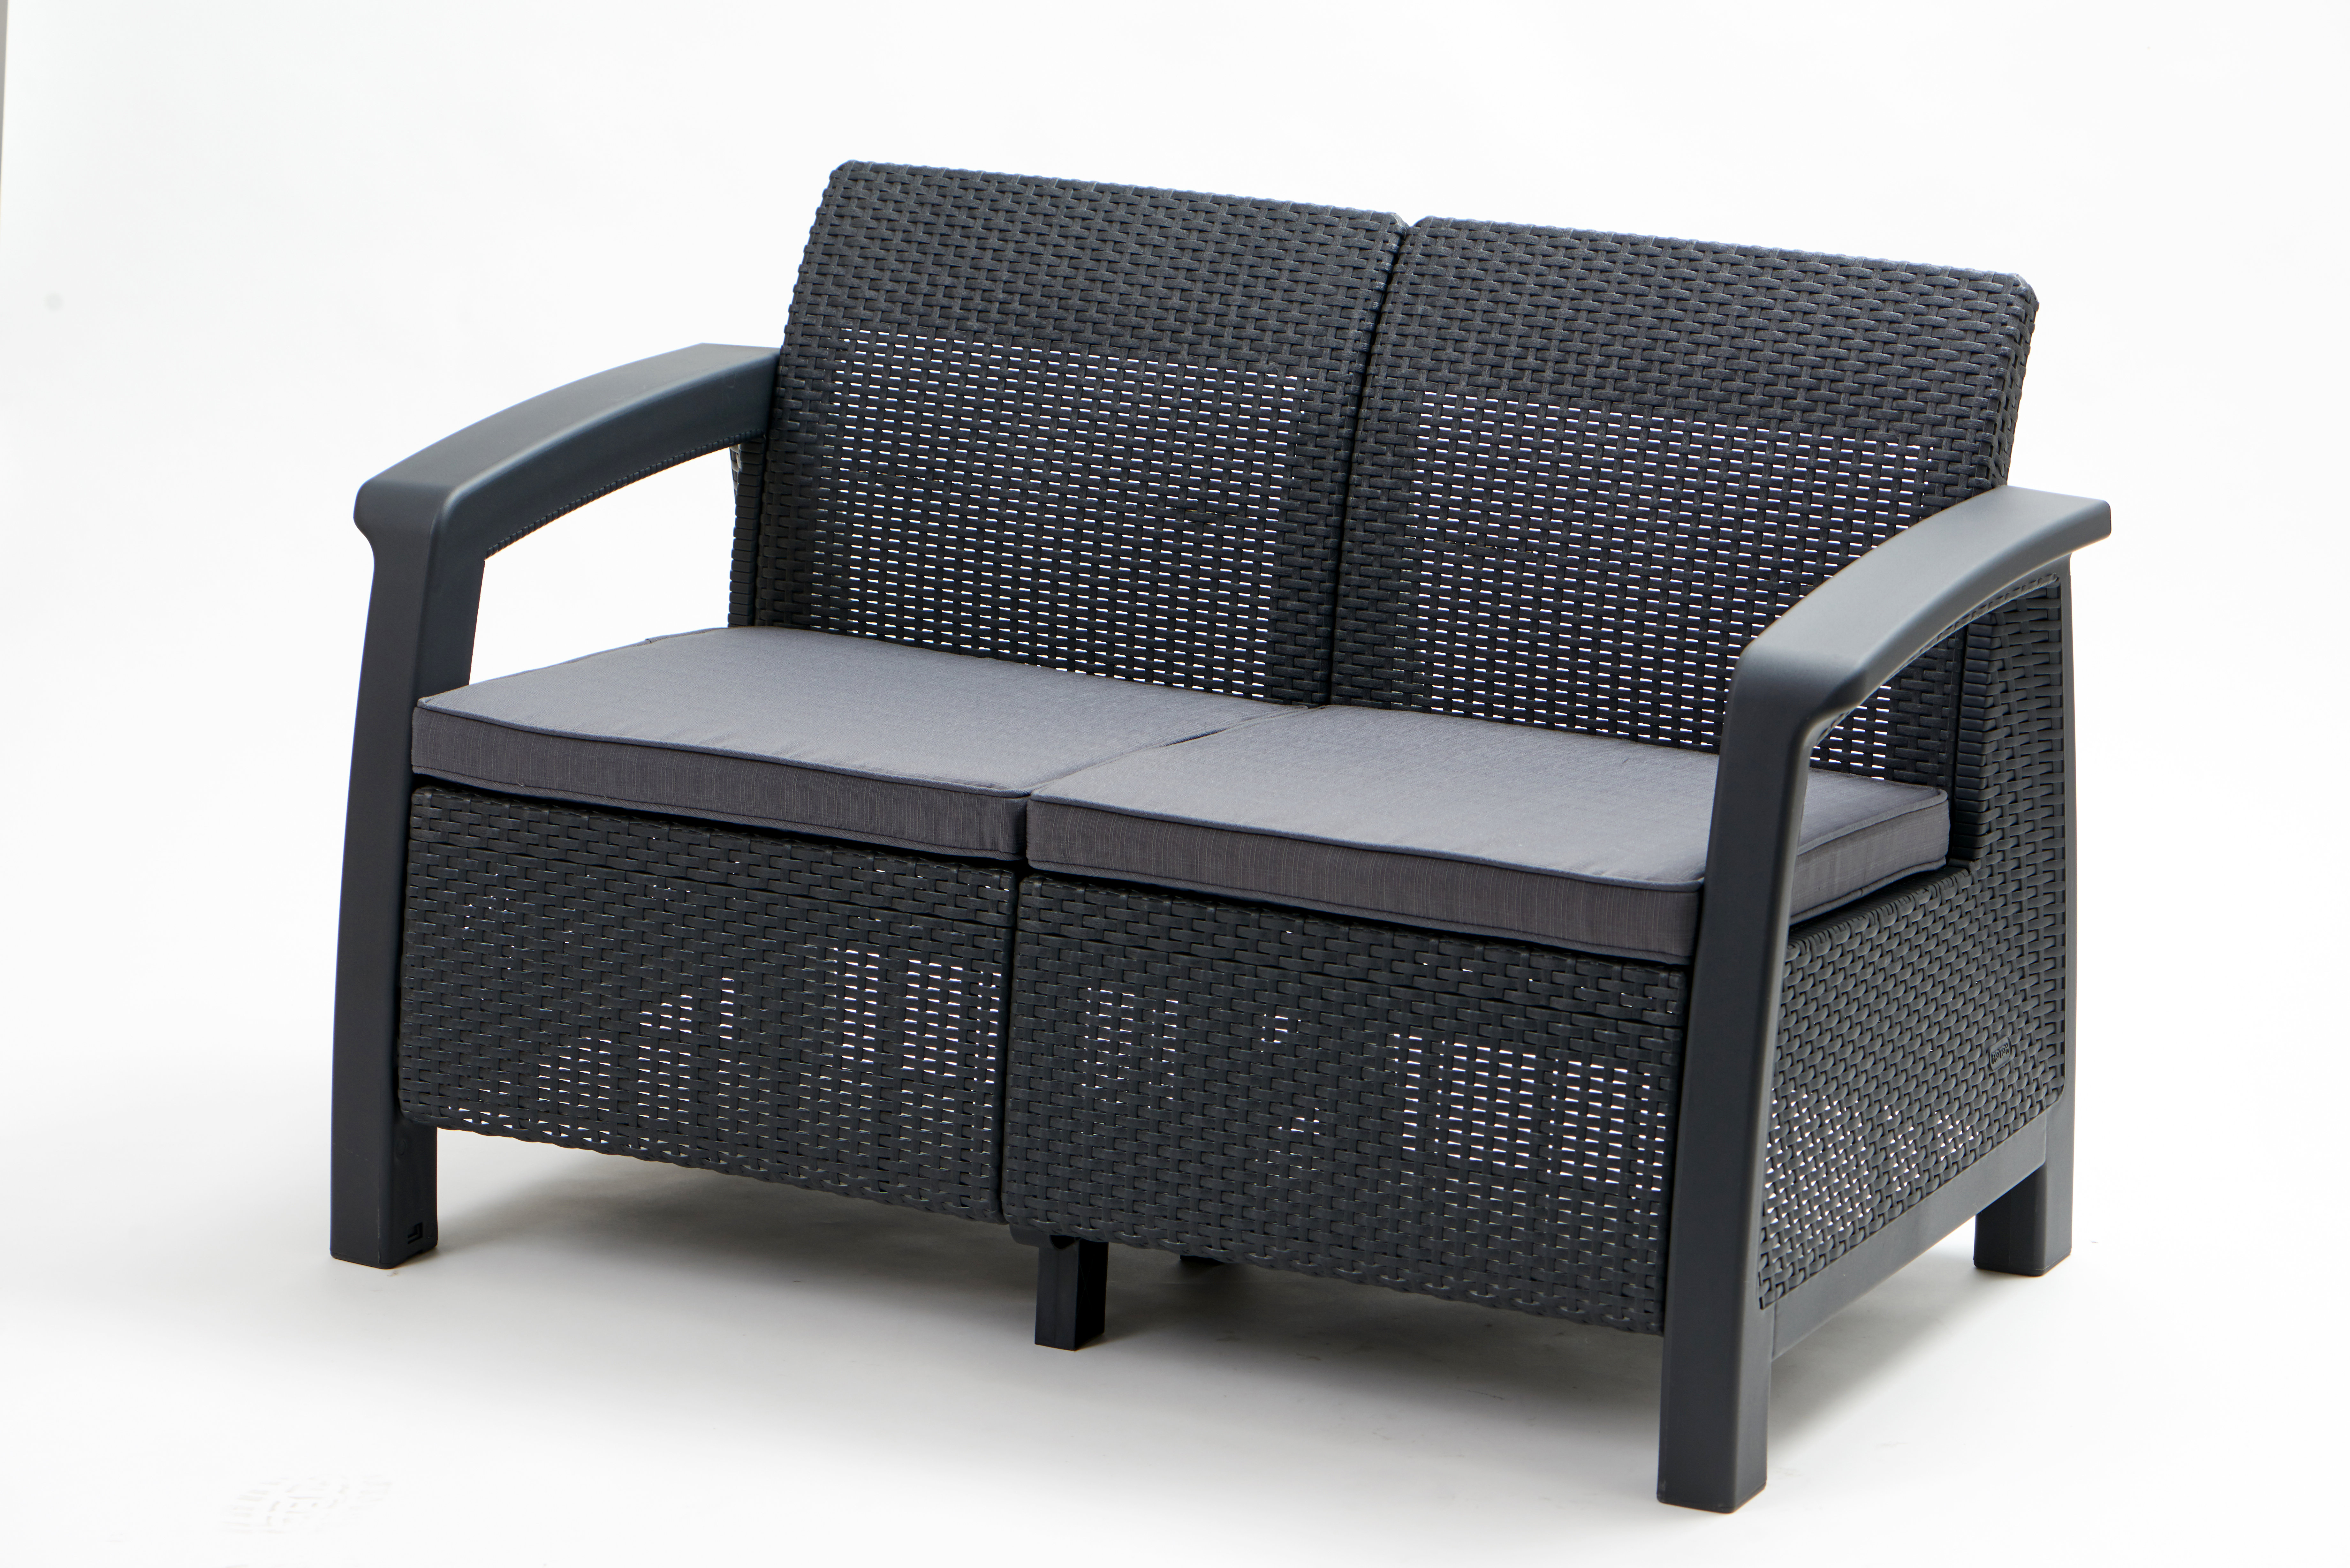 Mullenax Outdoor Loveseats With Cushions Pertaining To Well Known Berard Patio Loveseat With Cushions (View 9 of 20)